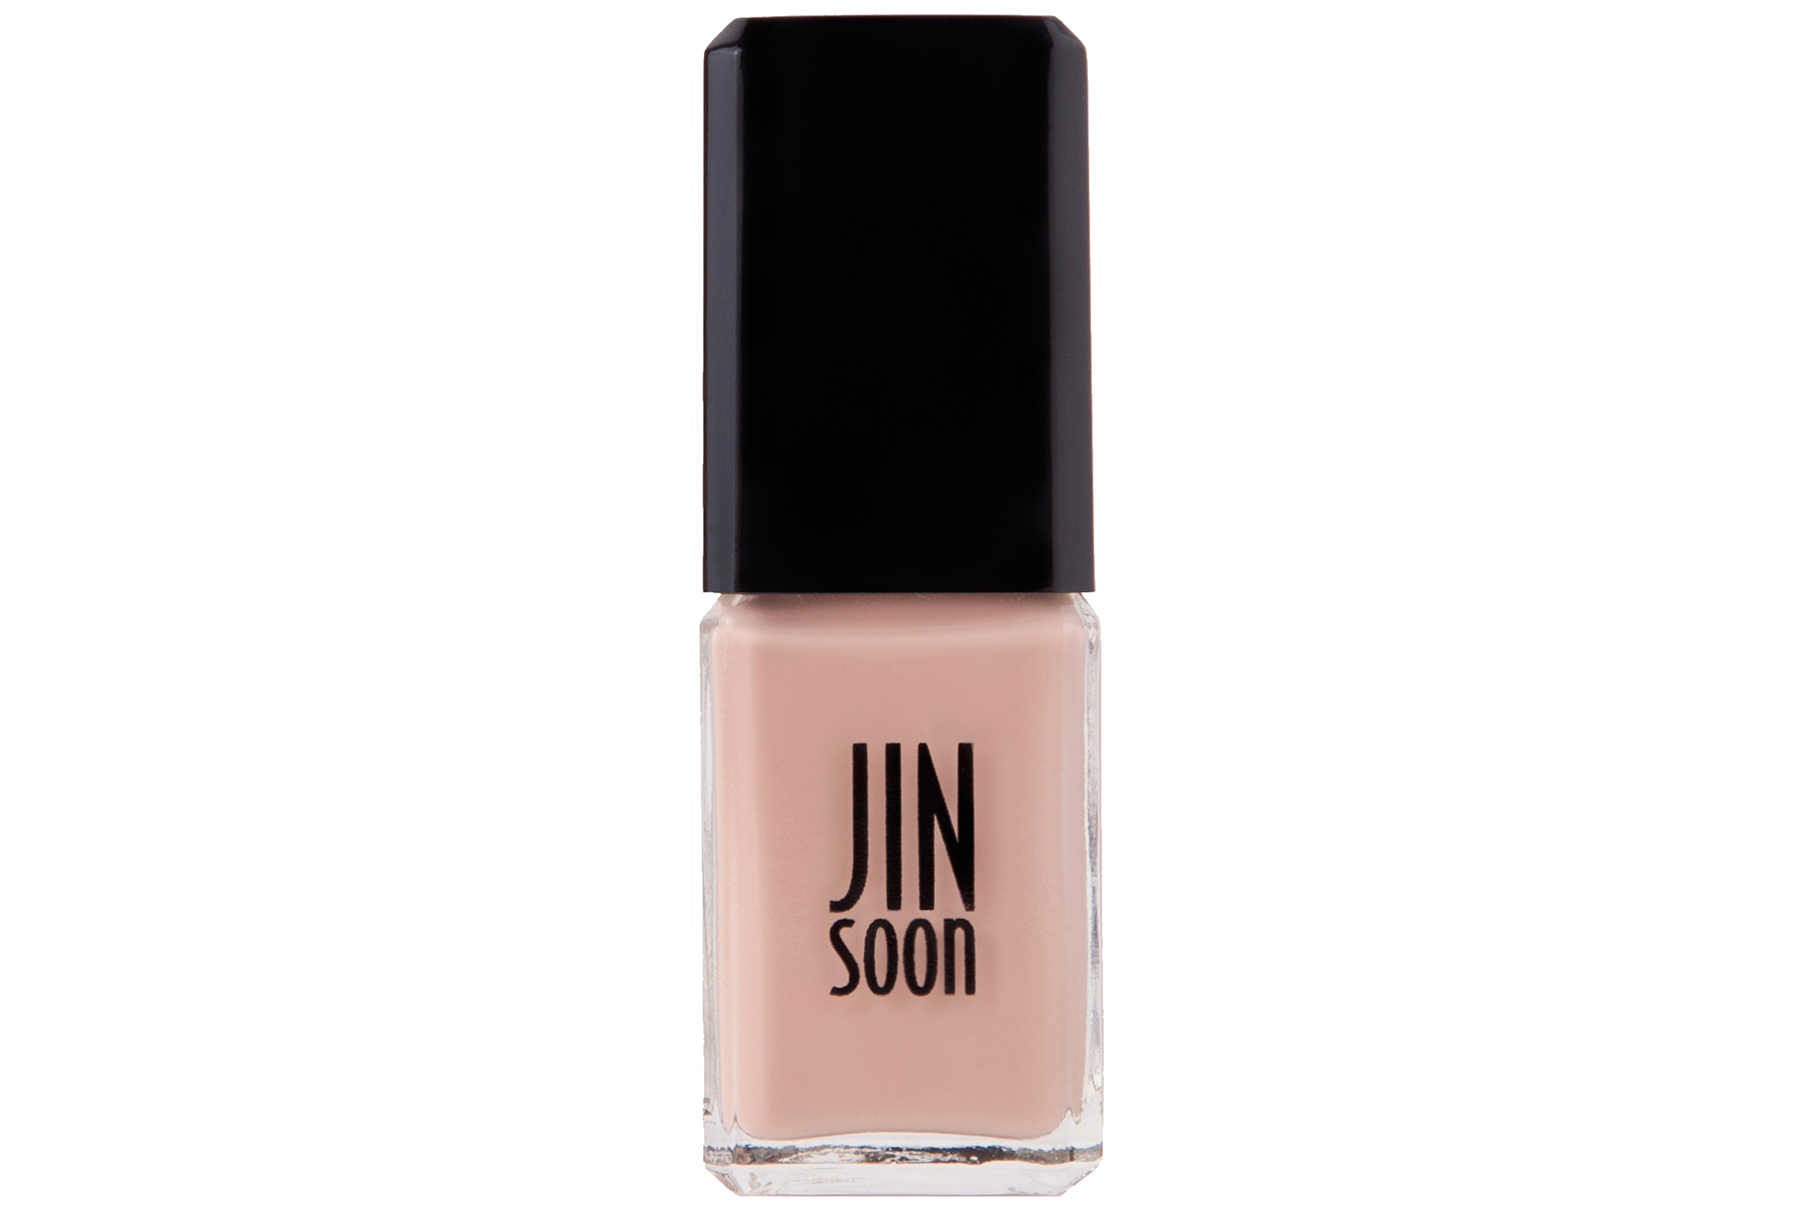 Nail Polish For Medium Skin Tone: The Best Nude Nail Polish For Every Skin Tone